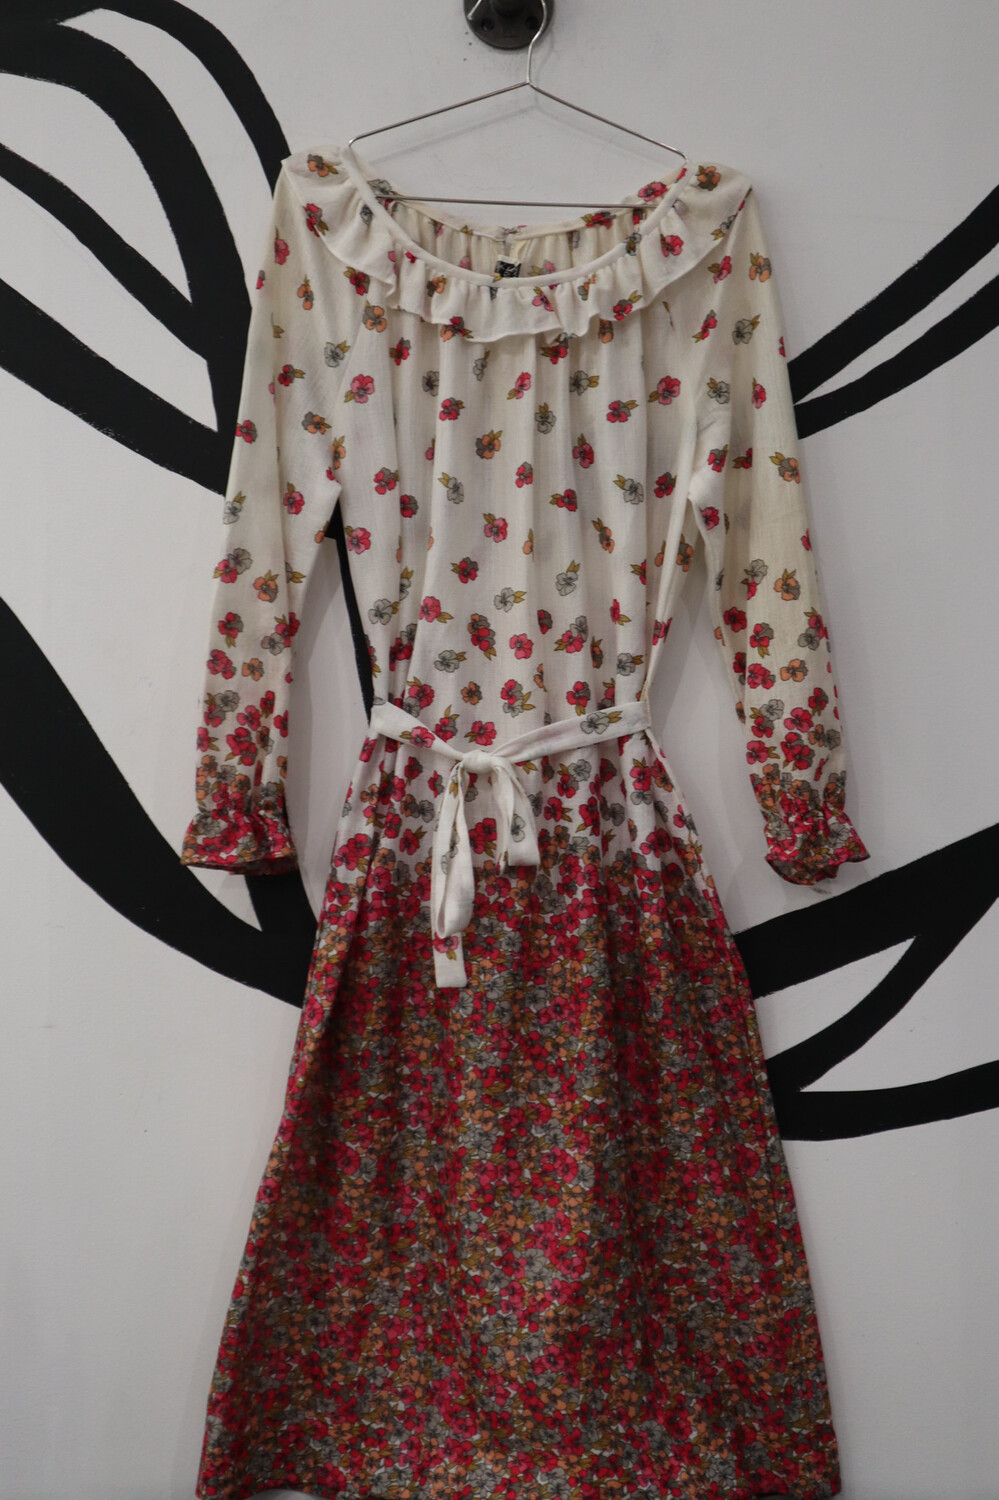 Sheer Floral Jerrie Lurie Dress- Large